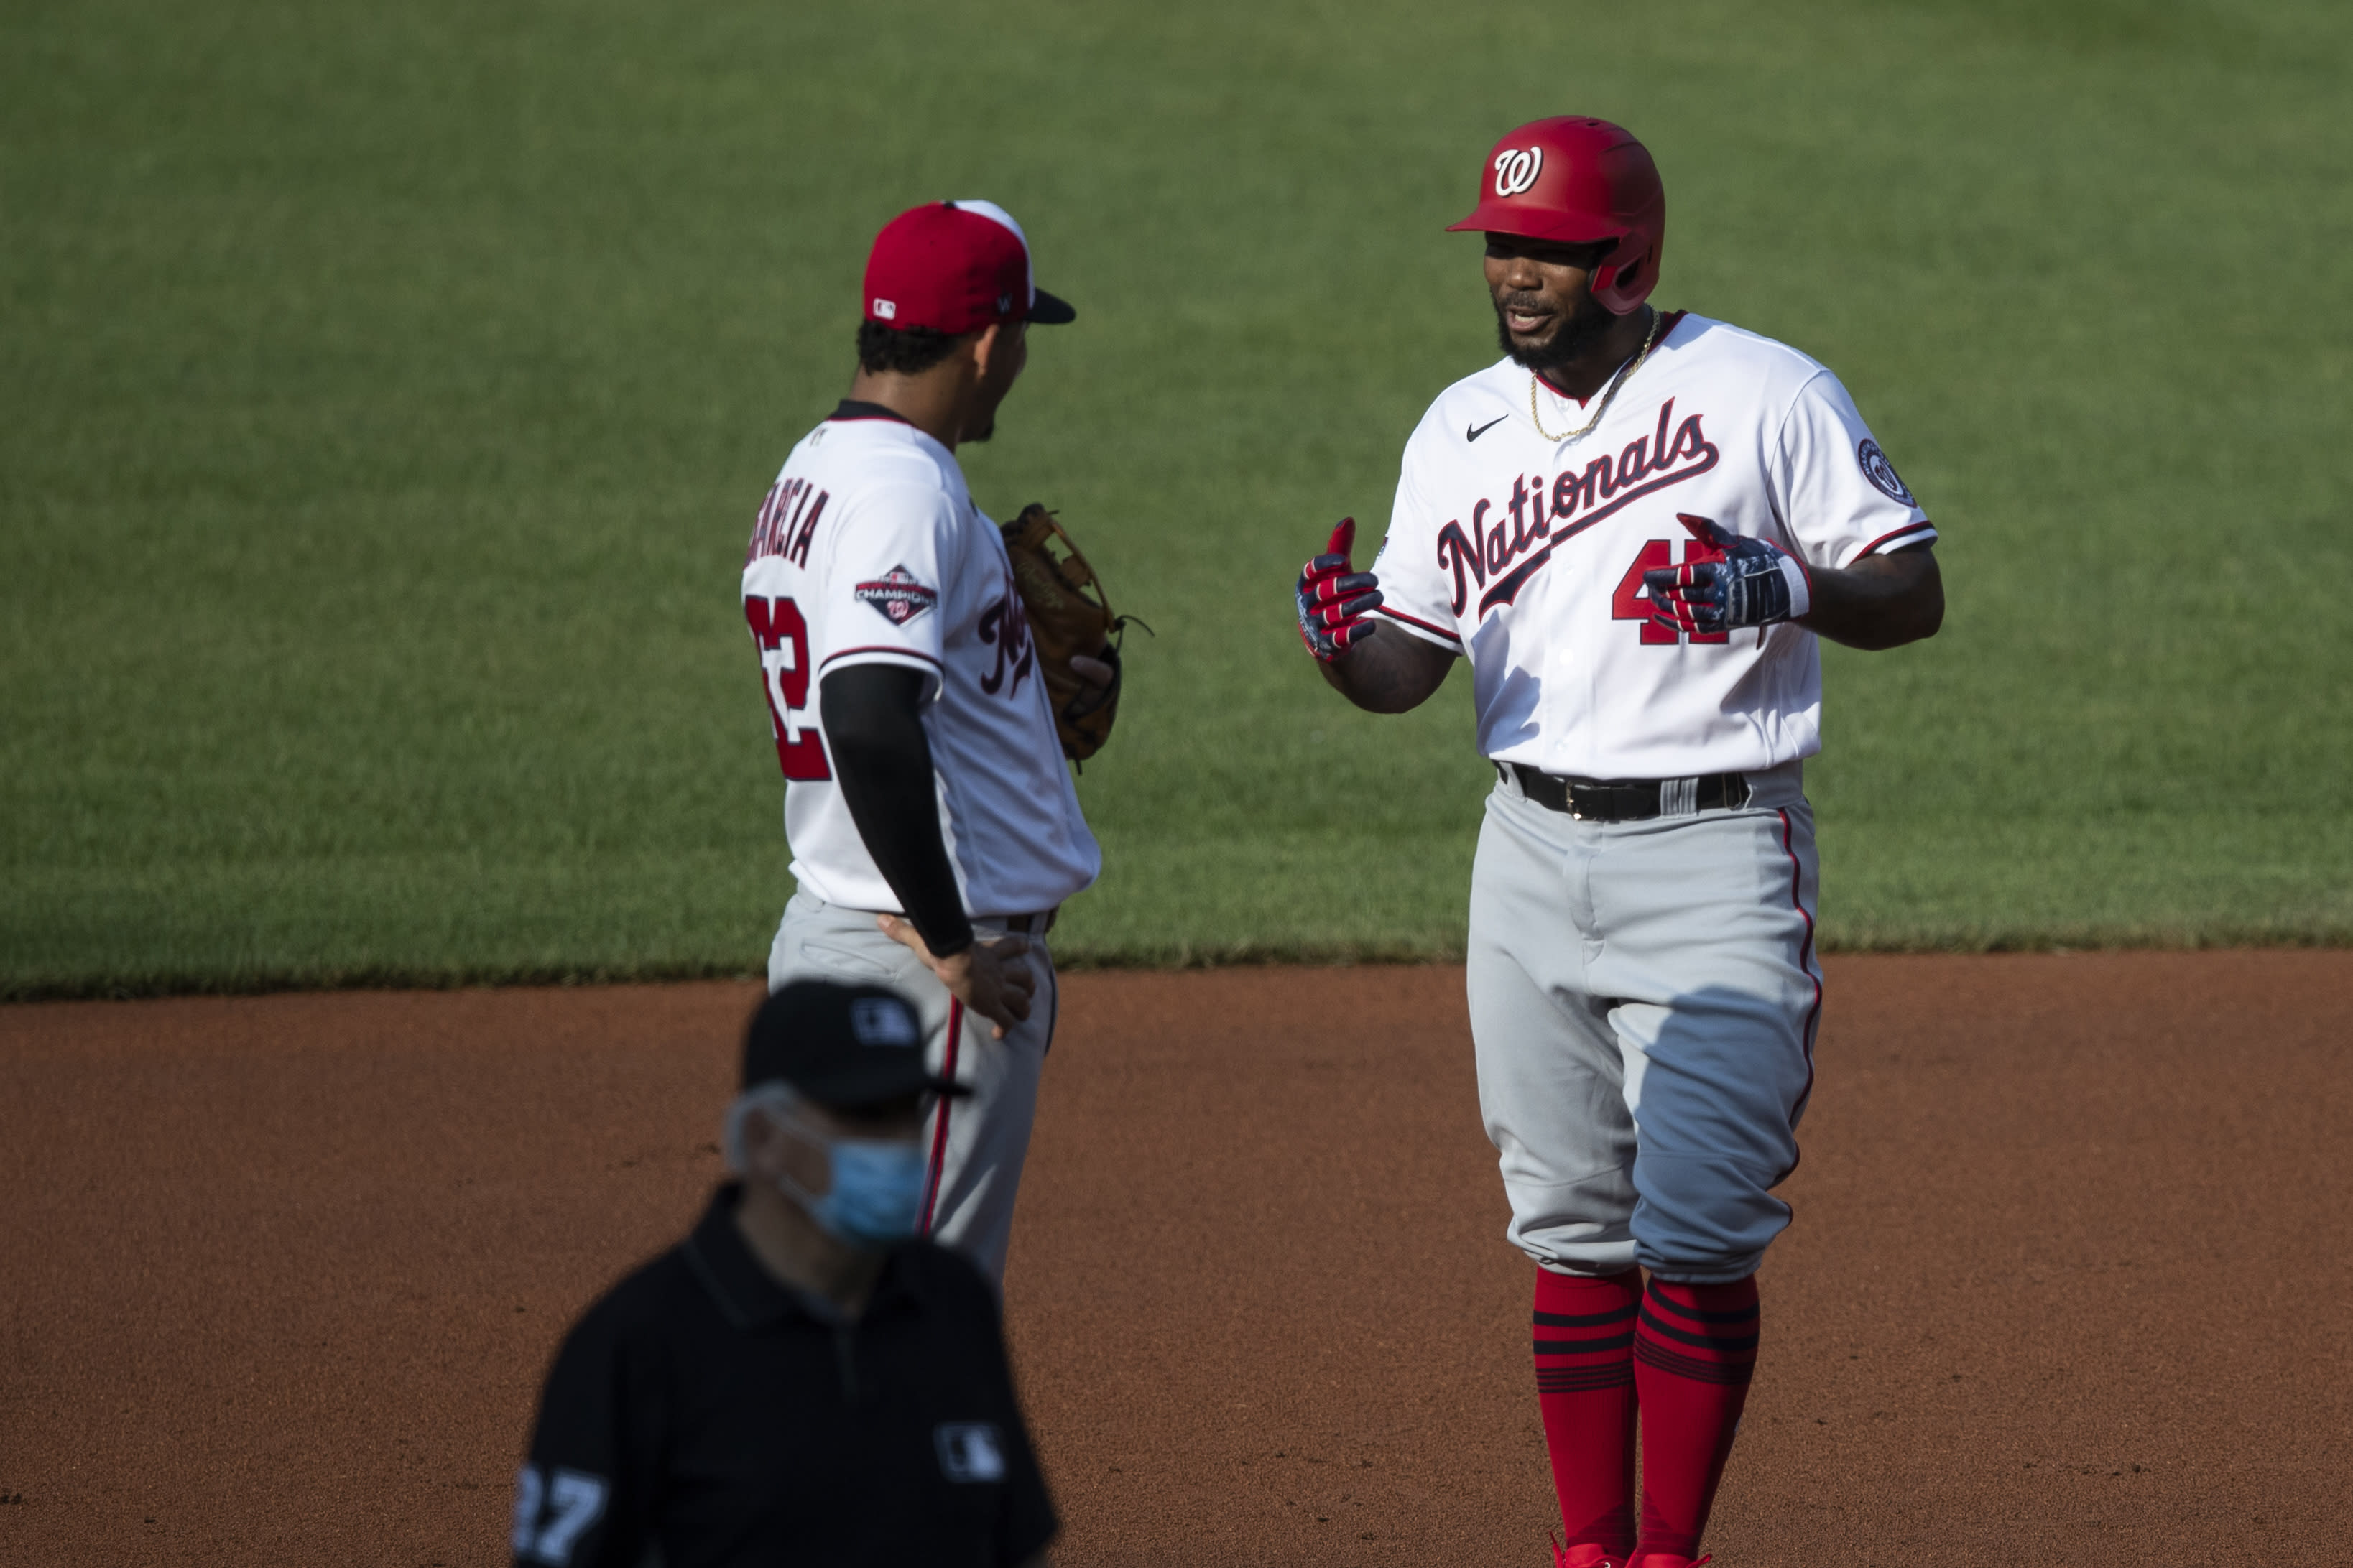 Washington Nationals shortstop Luis Garcia, left, talks with Howie Kendrick as he stands on second base during a baseball intrasquad game at Nationals Park, Thursday, July 16, 2020, in Washington. (AP Photo/Alex Brandon)